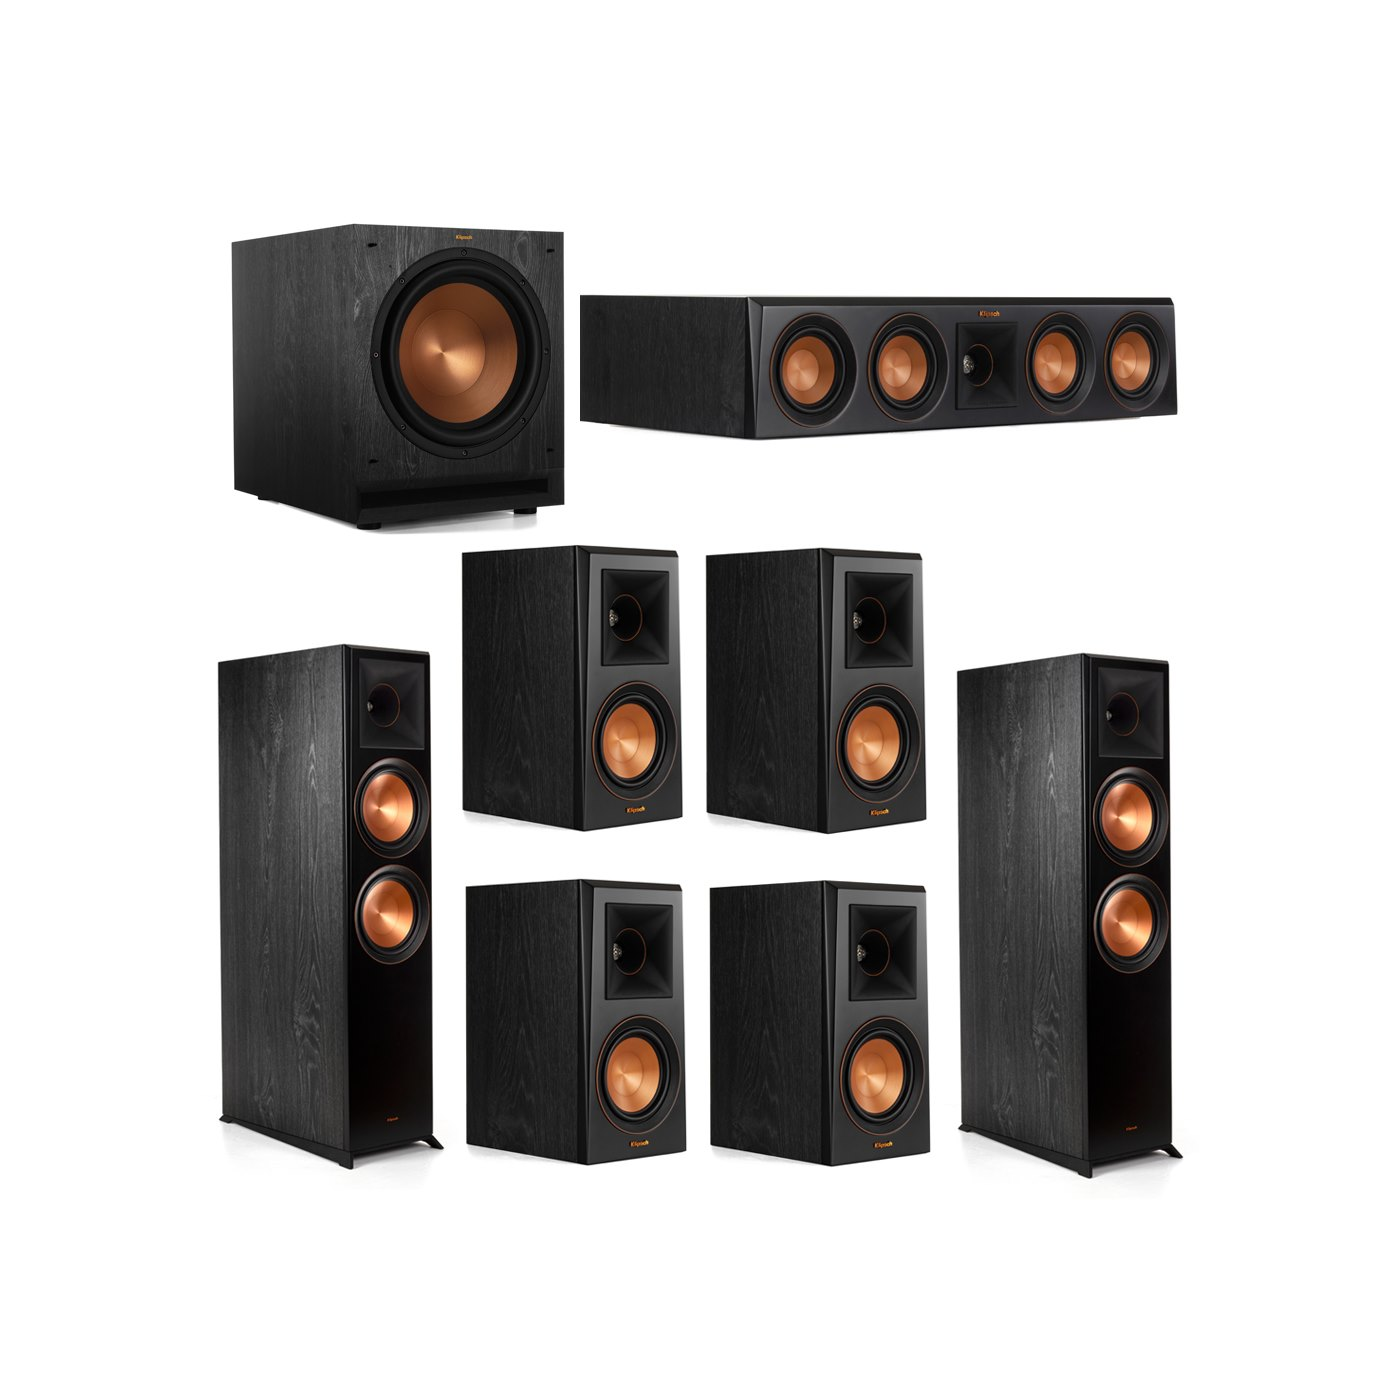 Klipsch 7.1.2 System - 2 RP-8060FA Dolby Atmos Speakers, 1 RP-404C, 4 RP-500M Speakers, 1 SPL-120